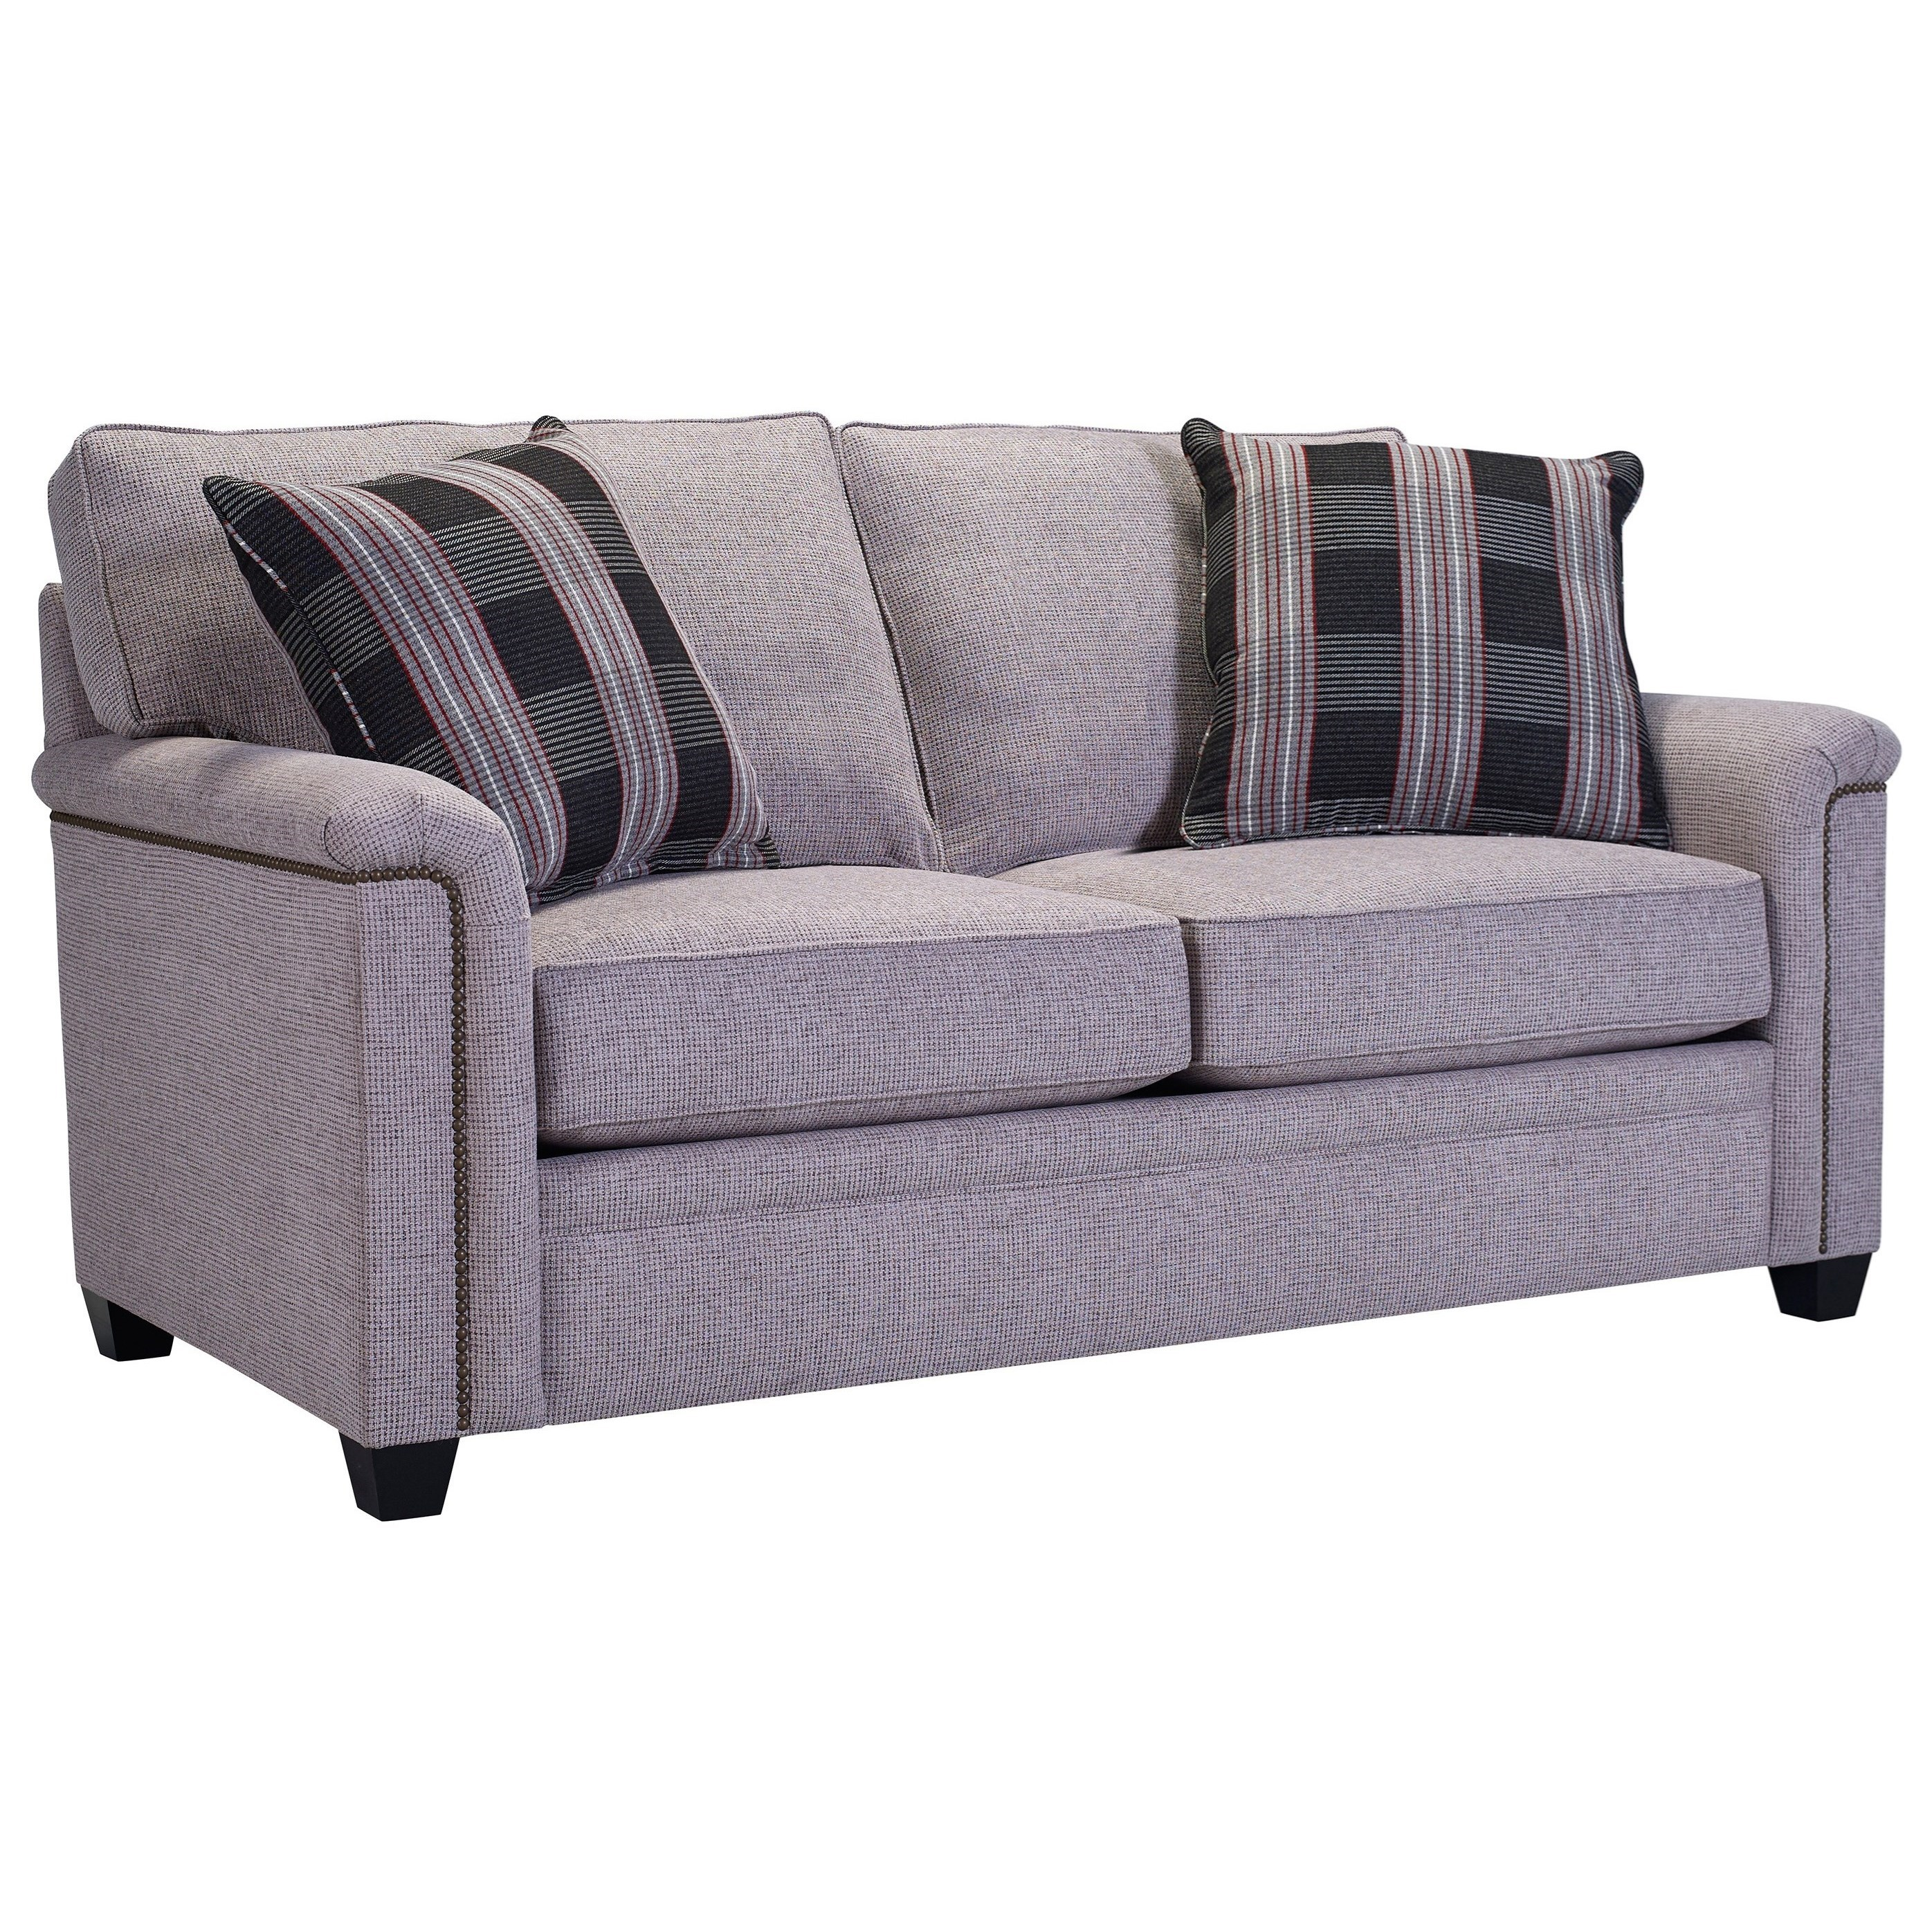 Genial Broyhill Furniture Warren Loveseat   Item Number: 4287 1 4695 95